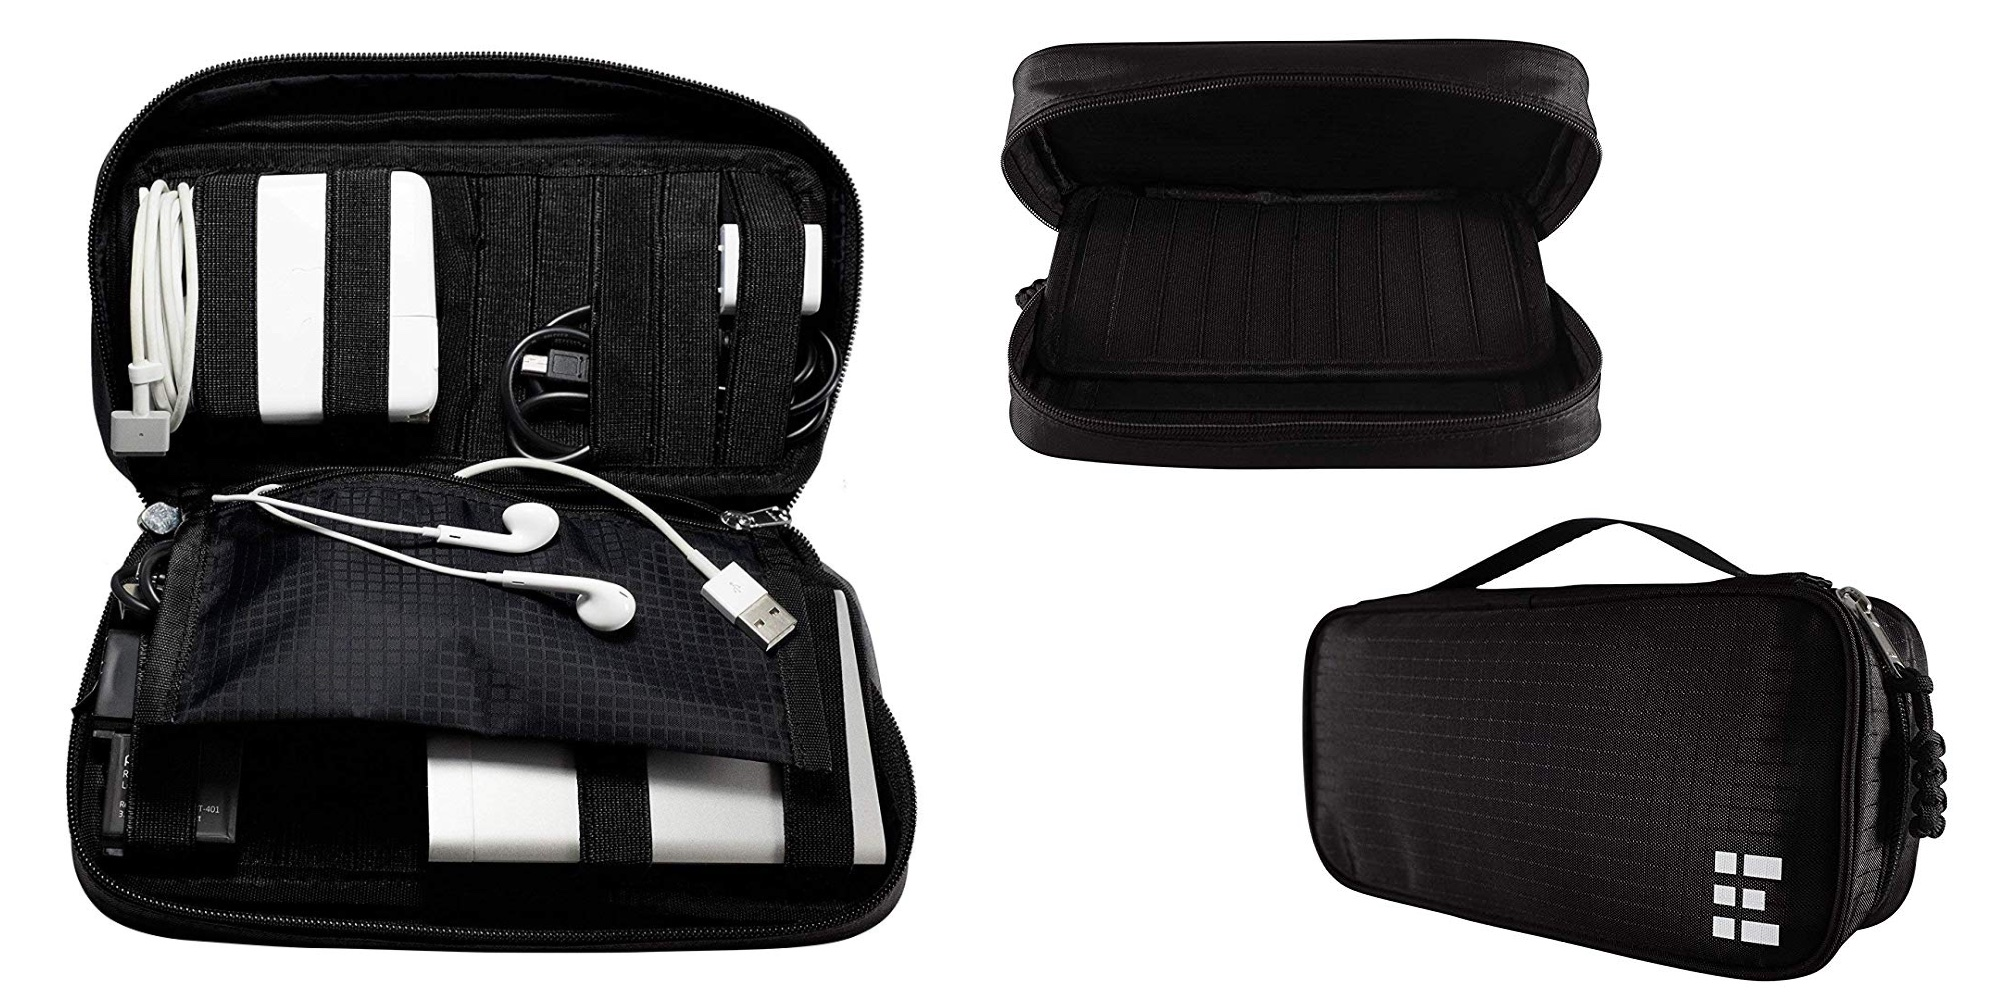 Keep your gear tidy with Zero Grid's Electronic Travel Organizer at $14 Prime shipped (20% off)